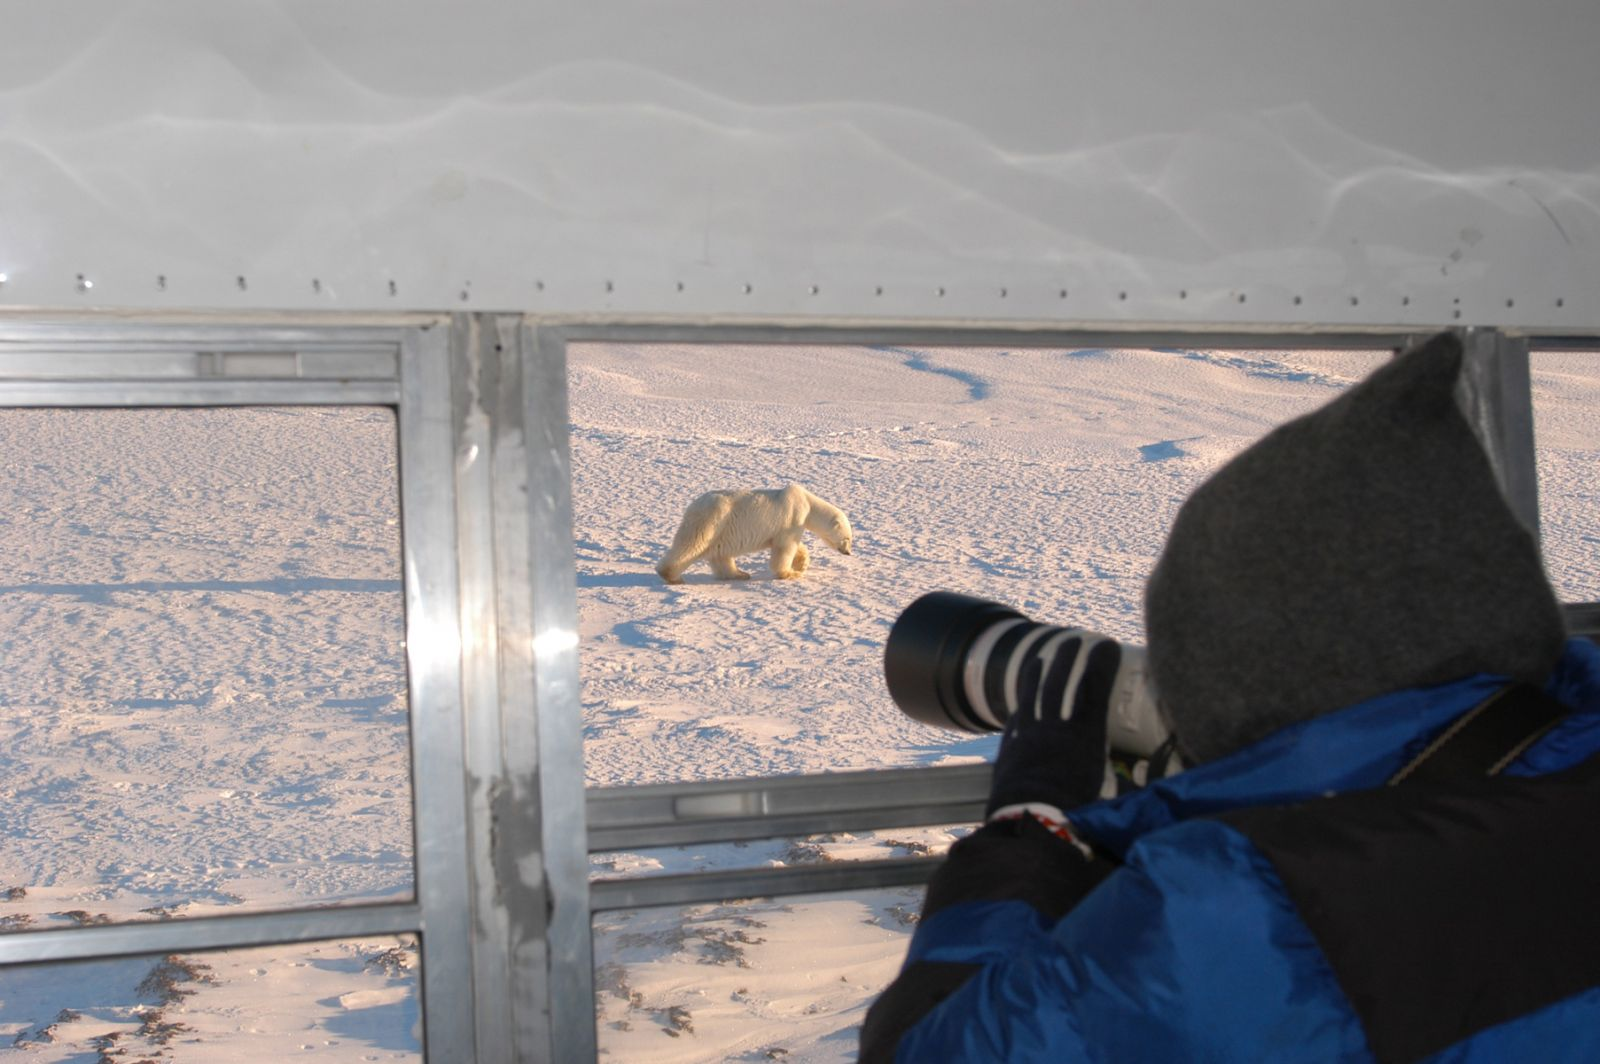 Photo from inside Tundra Buggy Churchill